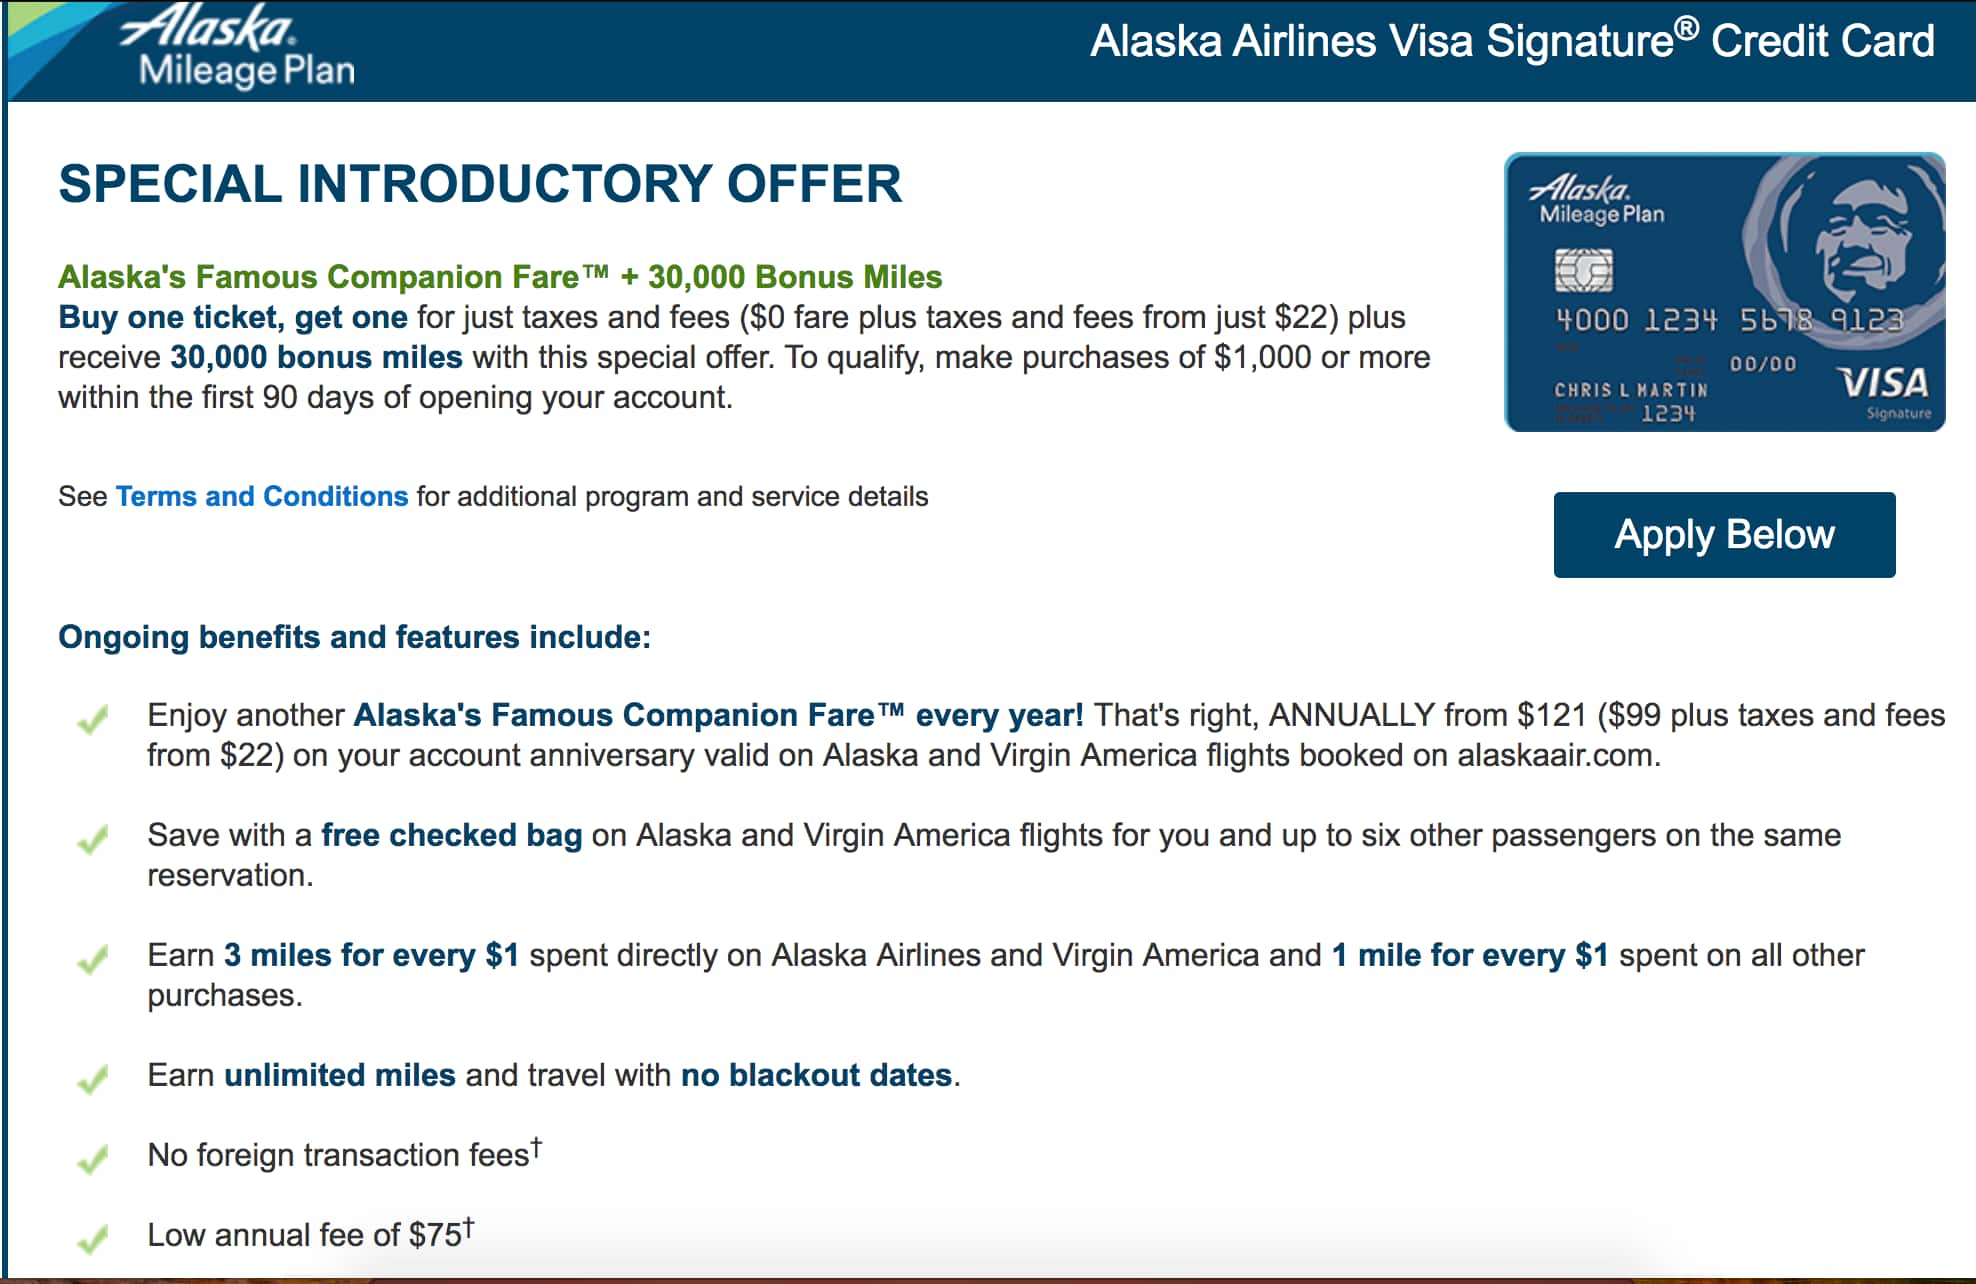 Alaska Airlines Visa Signature® Credit Card. BOGO Offer, 30K Miles plus Annual $99 Companion Pass